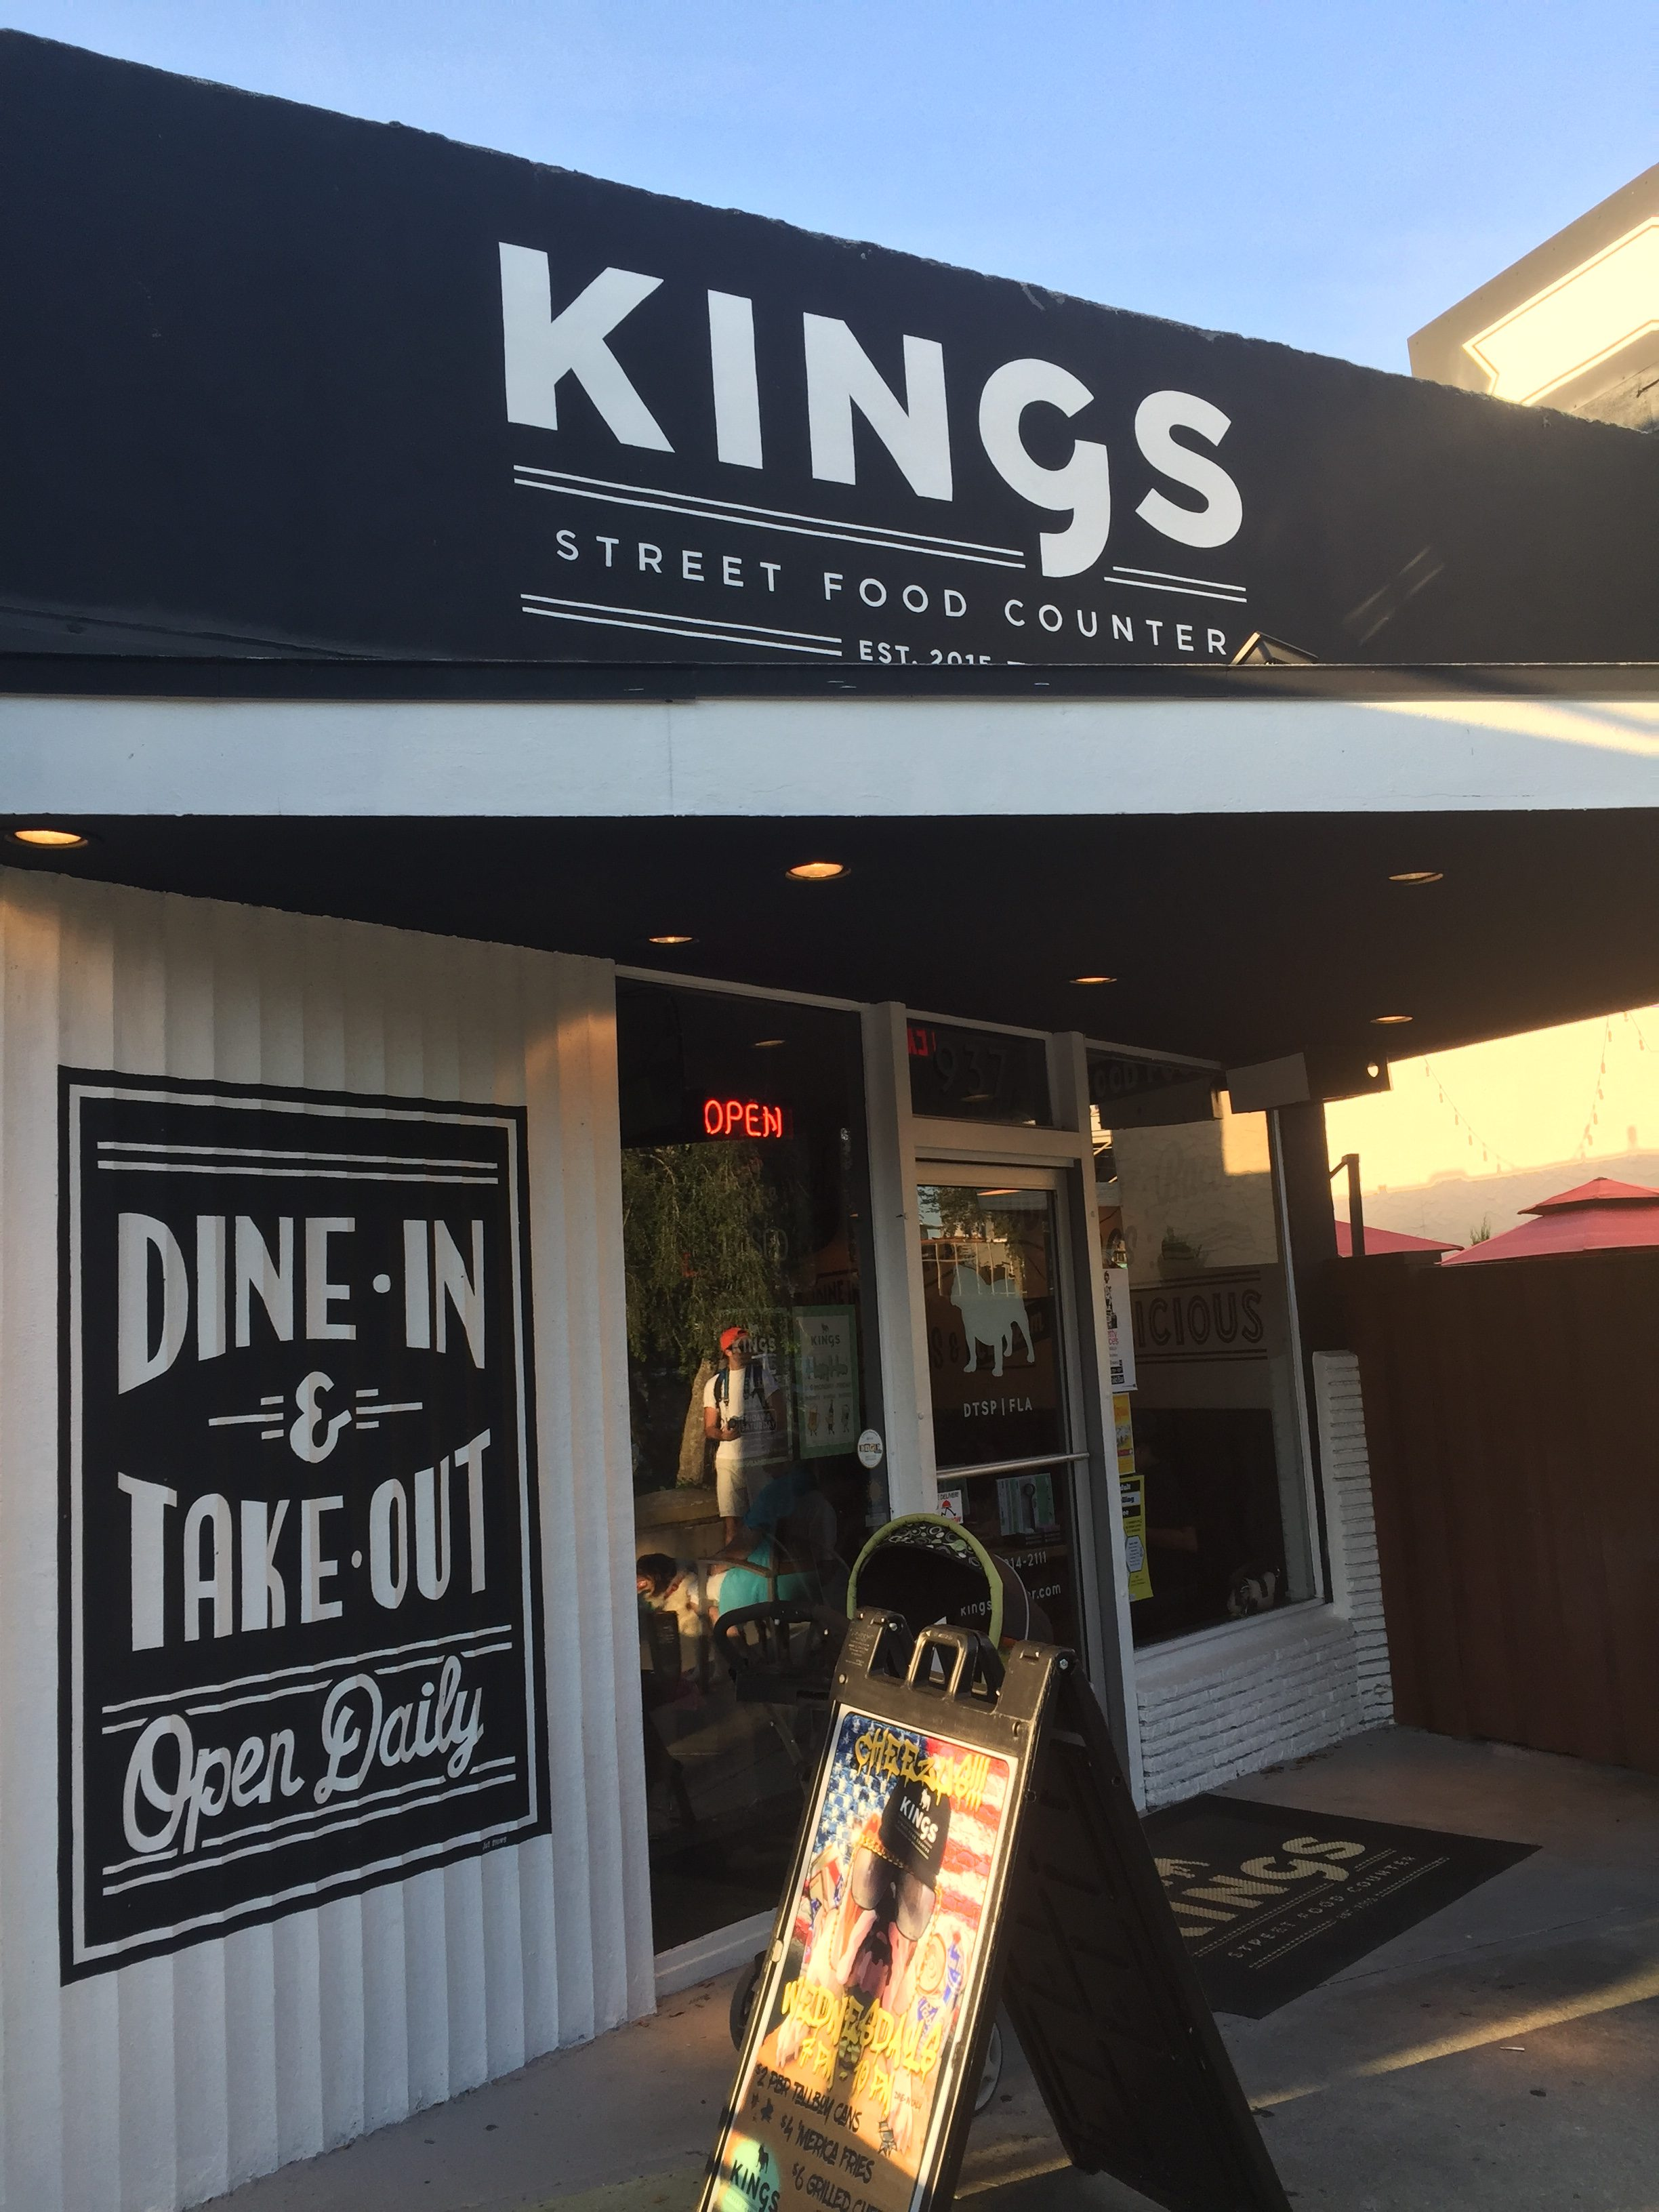 King's Street Food Counter